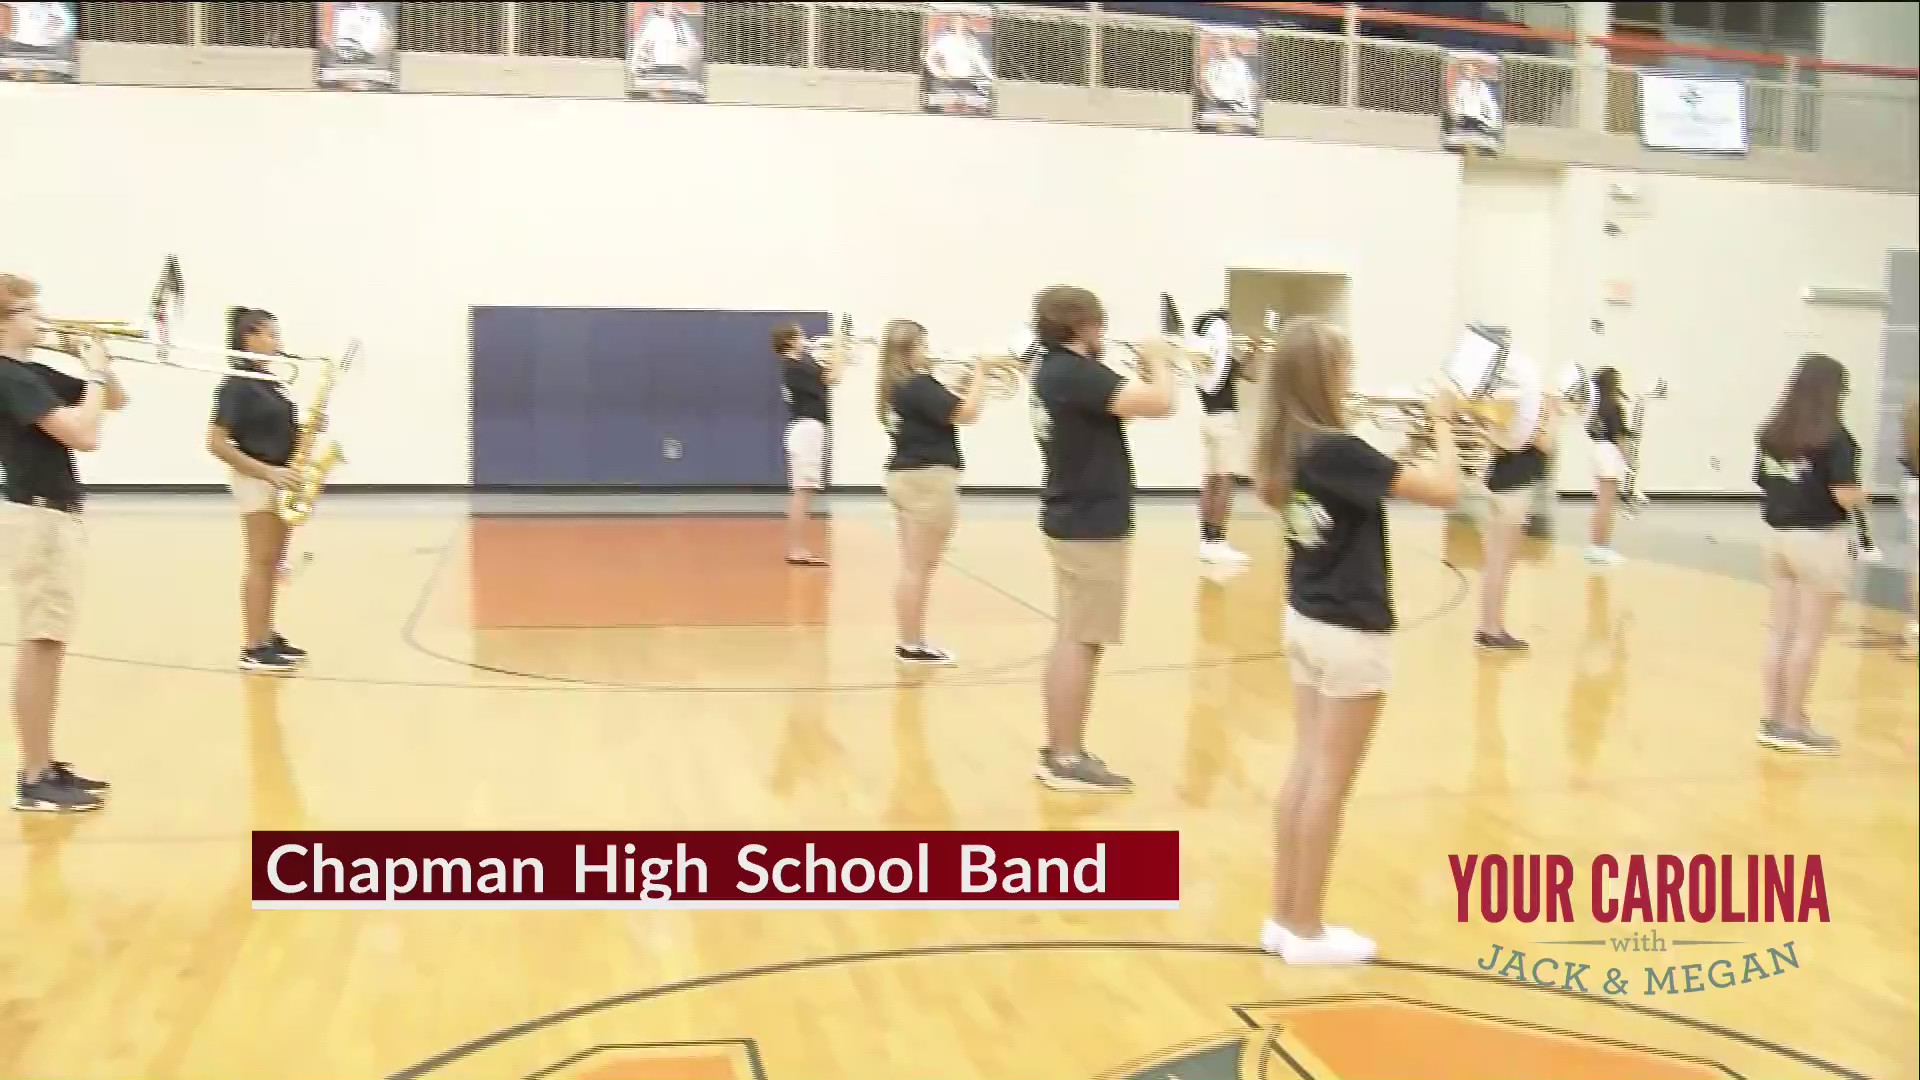 Chapman High School Band